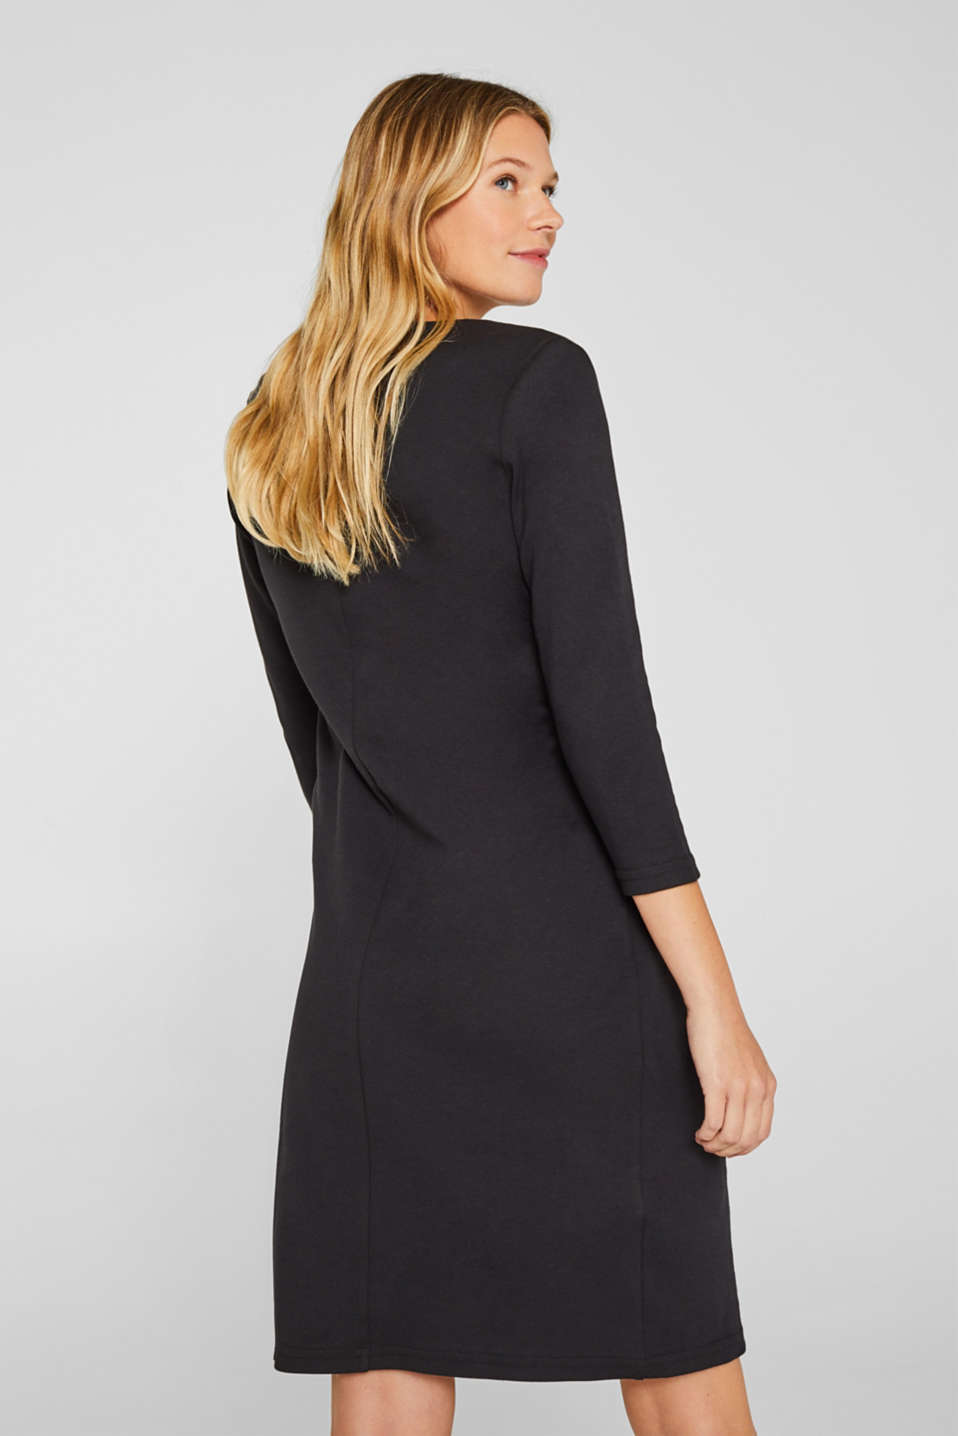 Draped stretch jersey dress, LCBLACK, detail image number 2